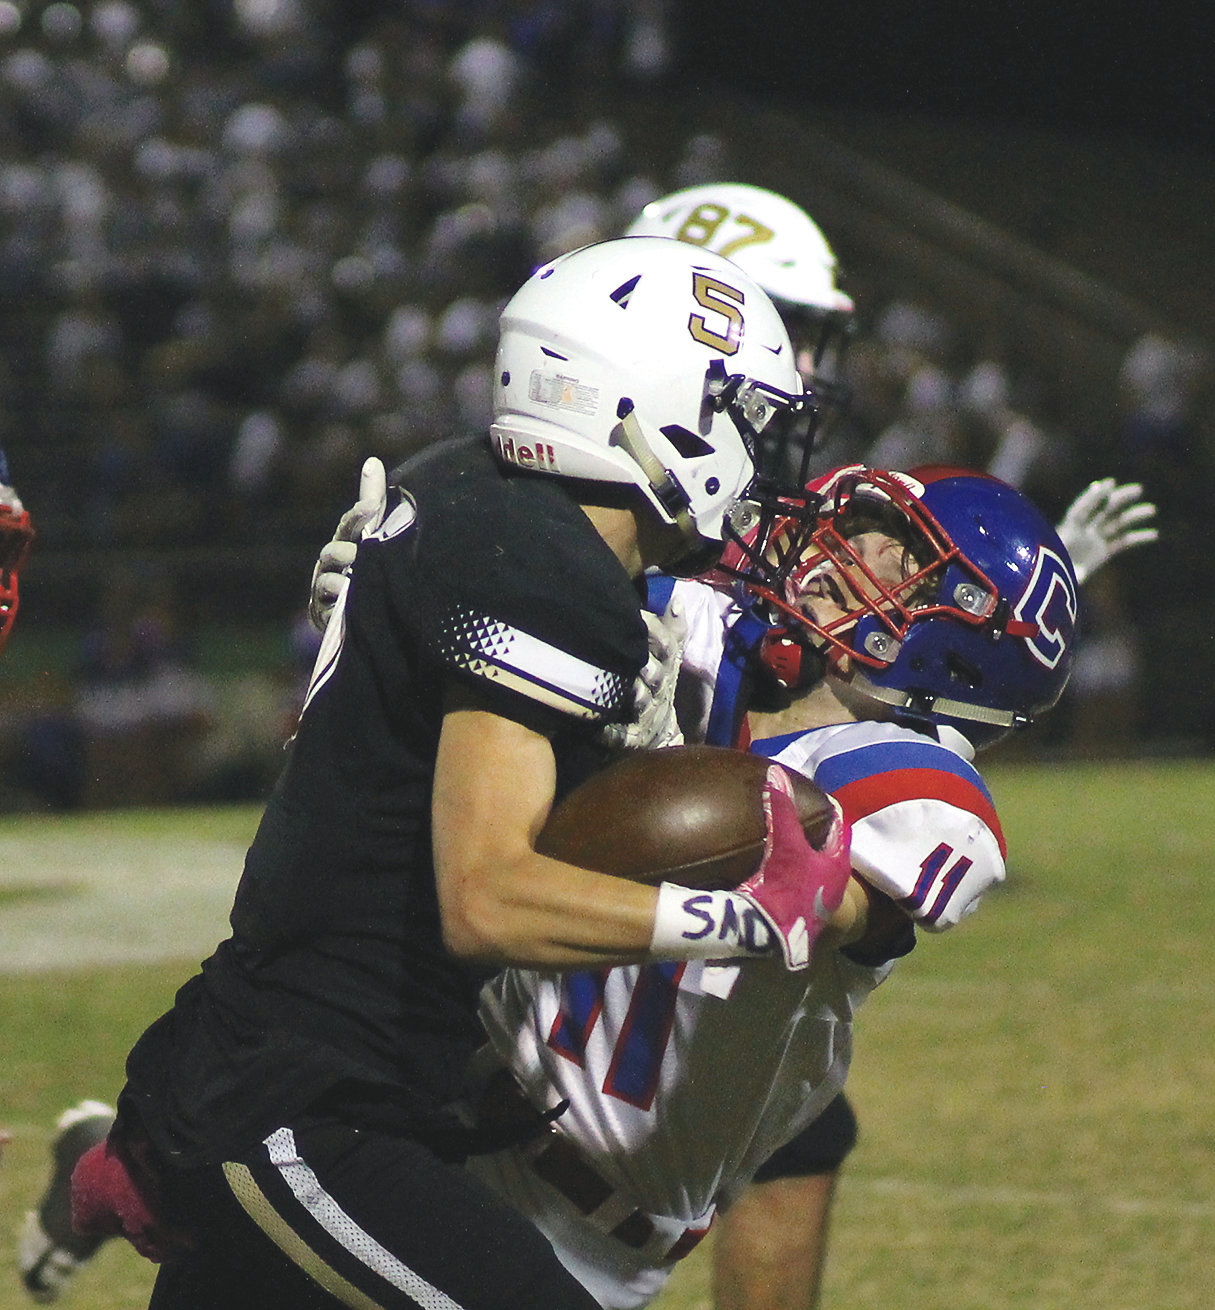 BRADLEY CENTRAL junior Kanon Hall (5) and his fellow fourth-ranked Bears will go face-to-face with No. 2 and unbeaten Maryville in a key Region 2-6A battle Friday, in Blount County.